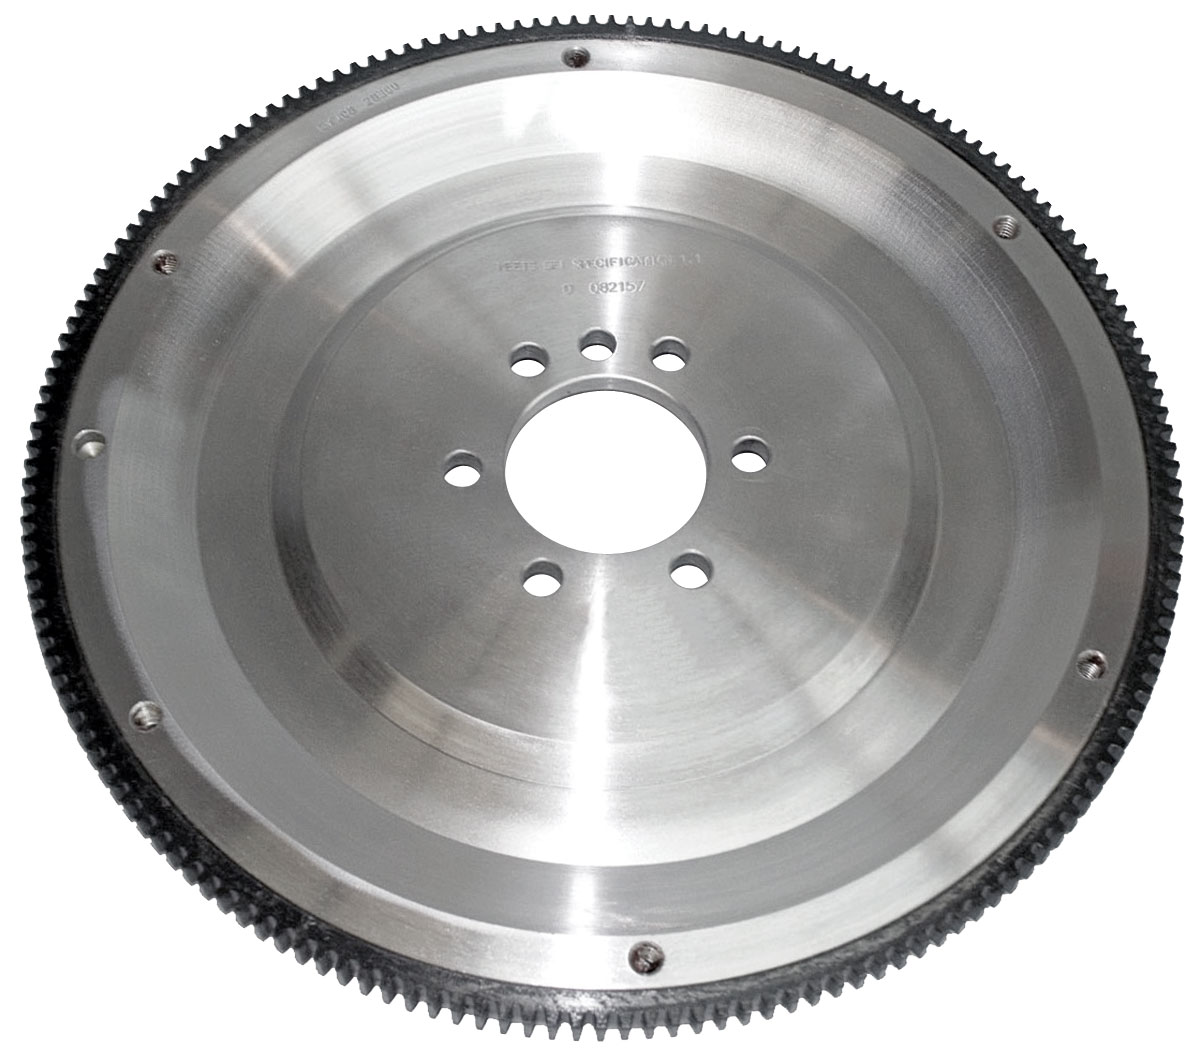 Flywheel, Hays, Chevrolet SB Exc. 400, Internal Balanced, 153 Tooth